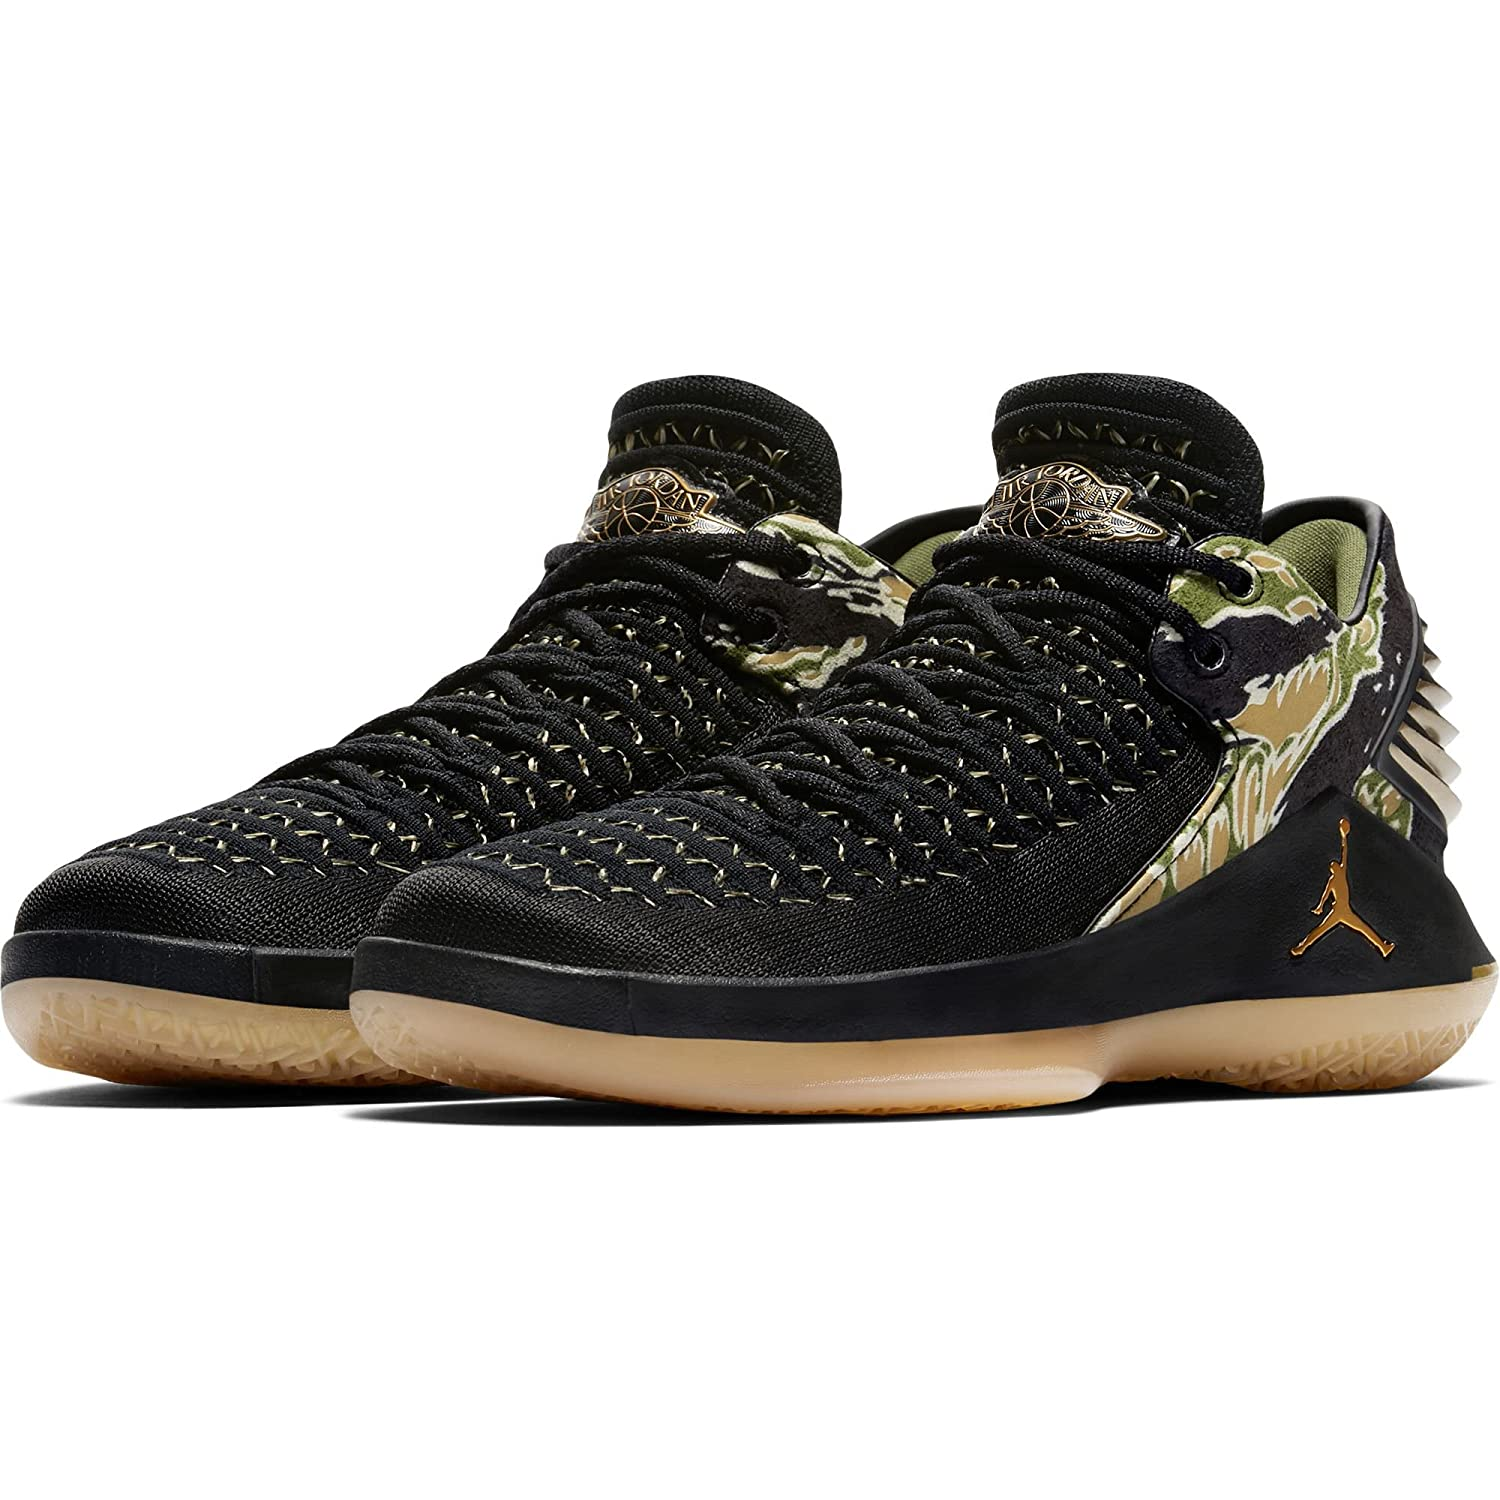 buy online 27195 acf60 Nike Air Jordan XXXII Tiger Camo , Schuhe Herren 38.5 EUBlackMetallic  Gold-Gum Yellow - associate-degree.de